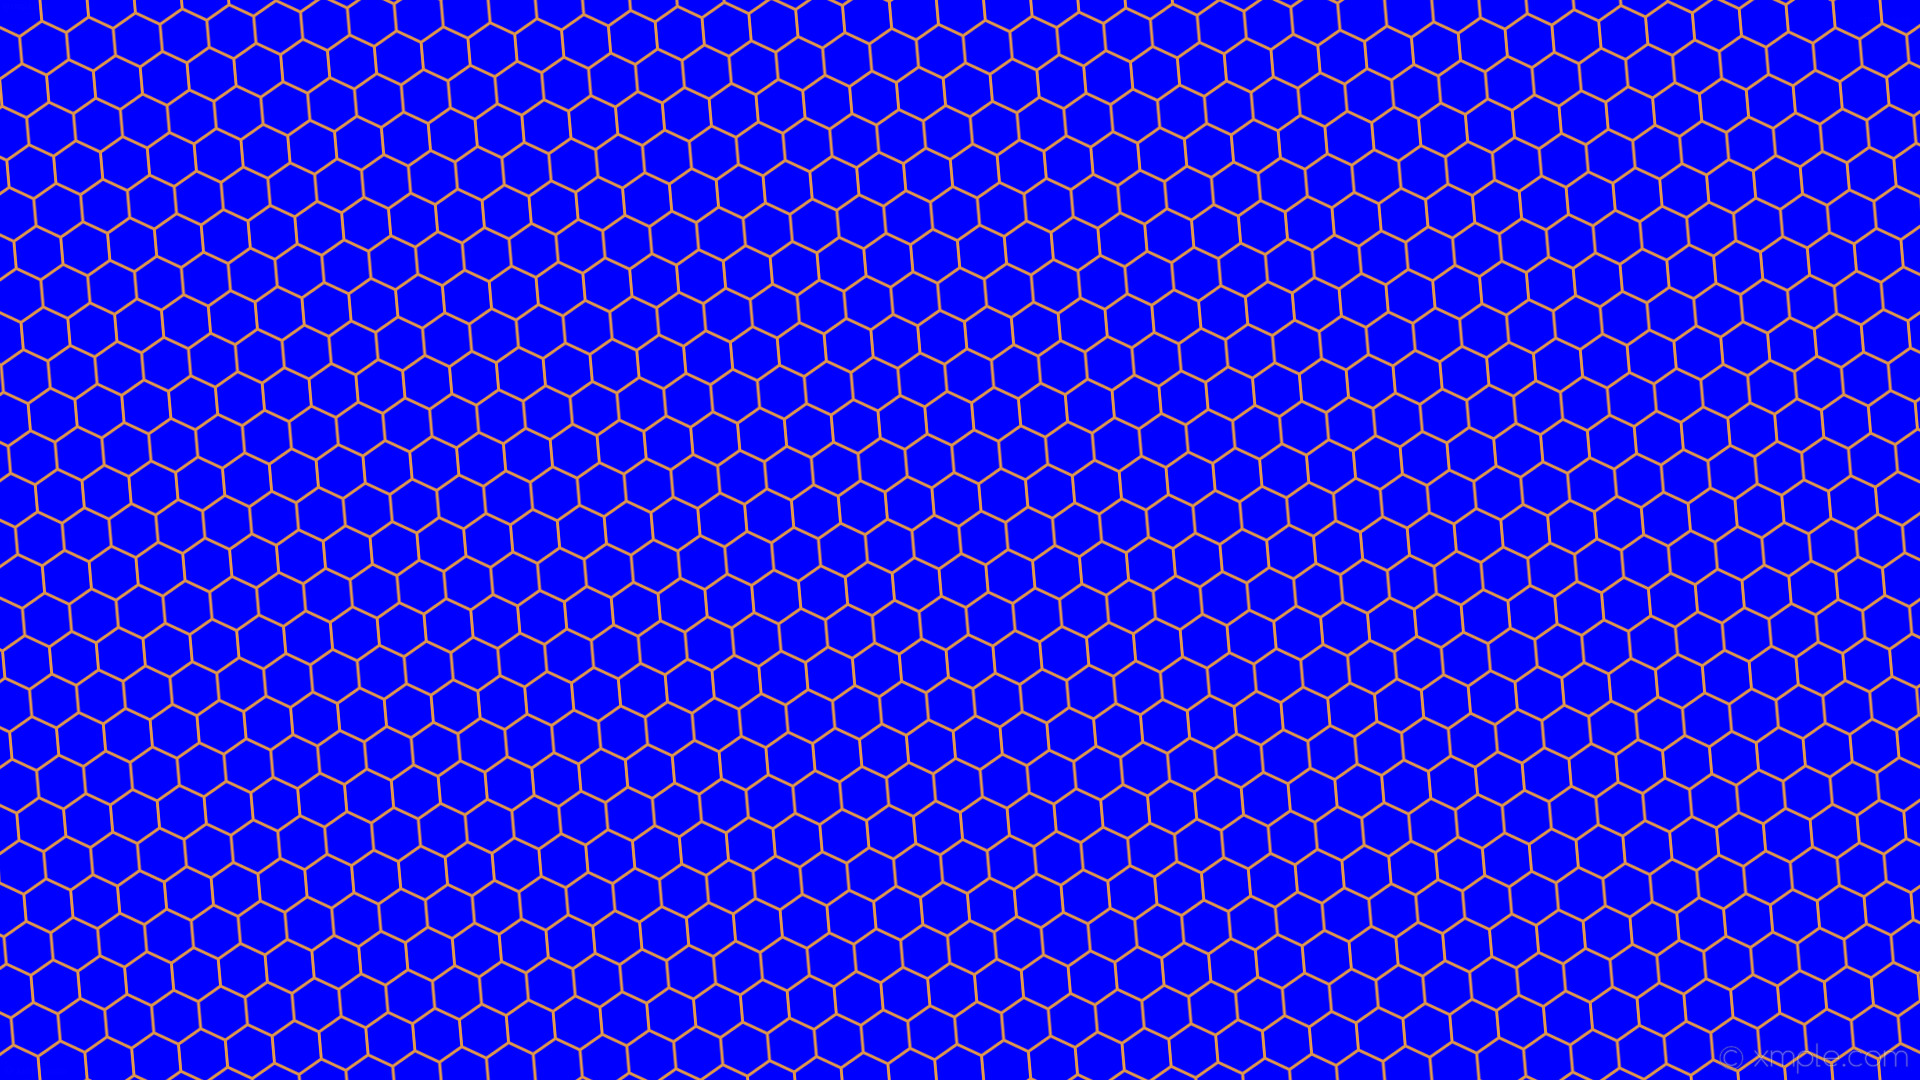 Res: 1920x1080, Wallpaper honeycomb blue orange hexagon beehive #0000ff #db9449 diagonal 5°  3px 47px